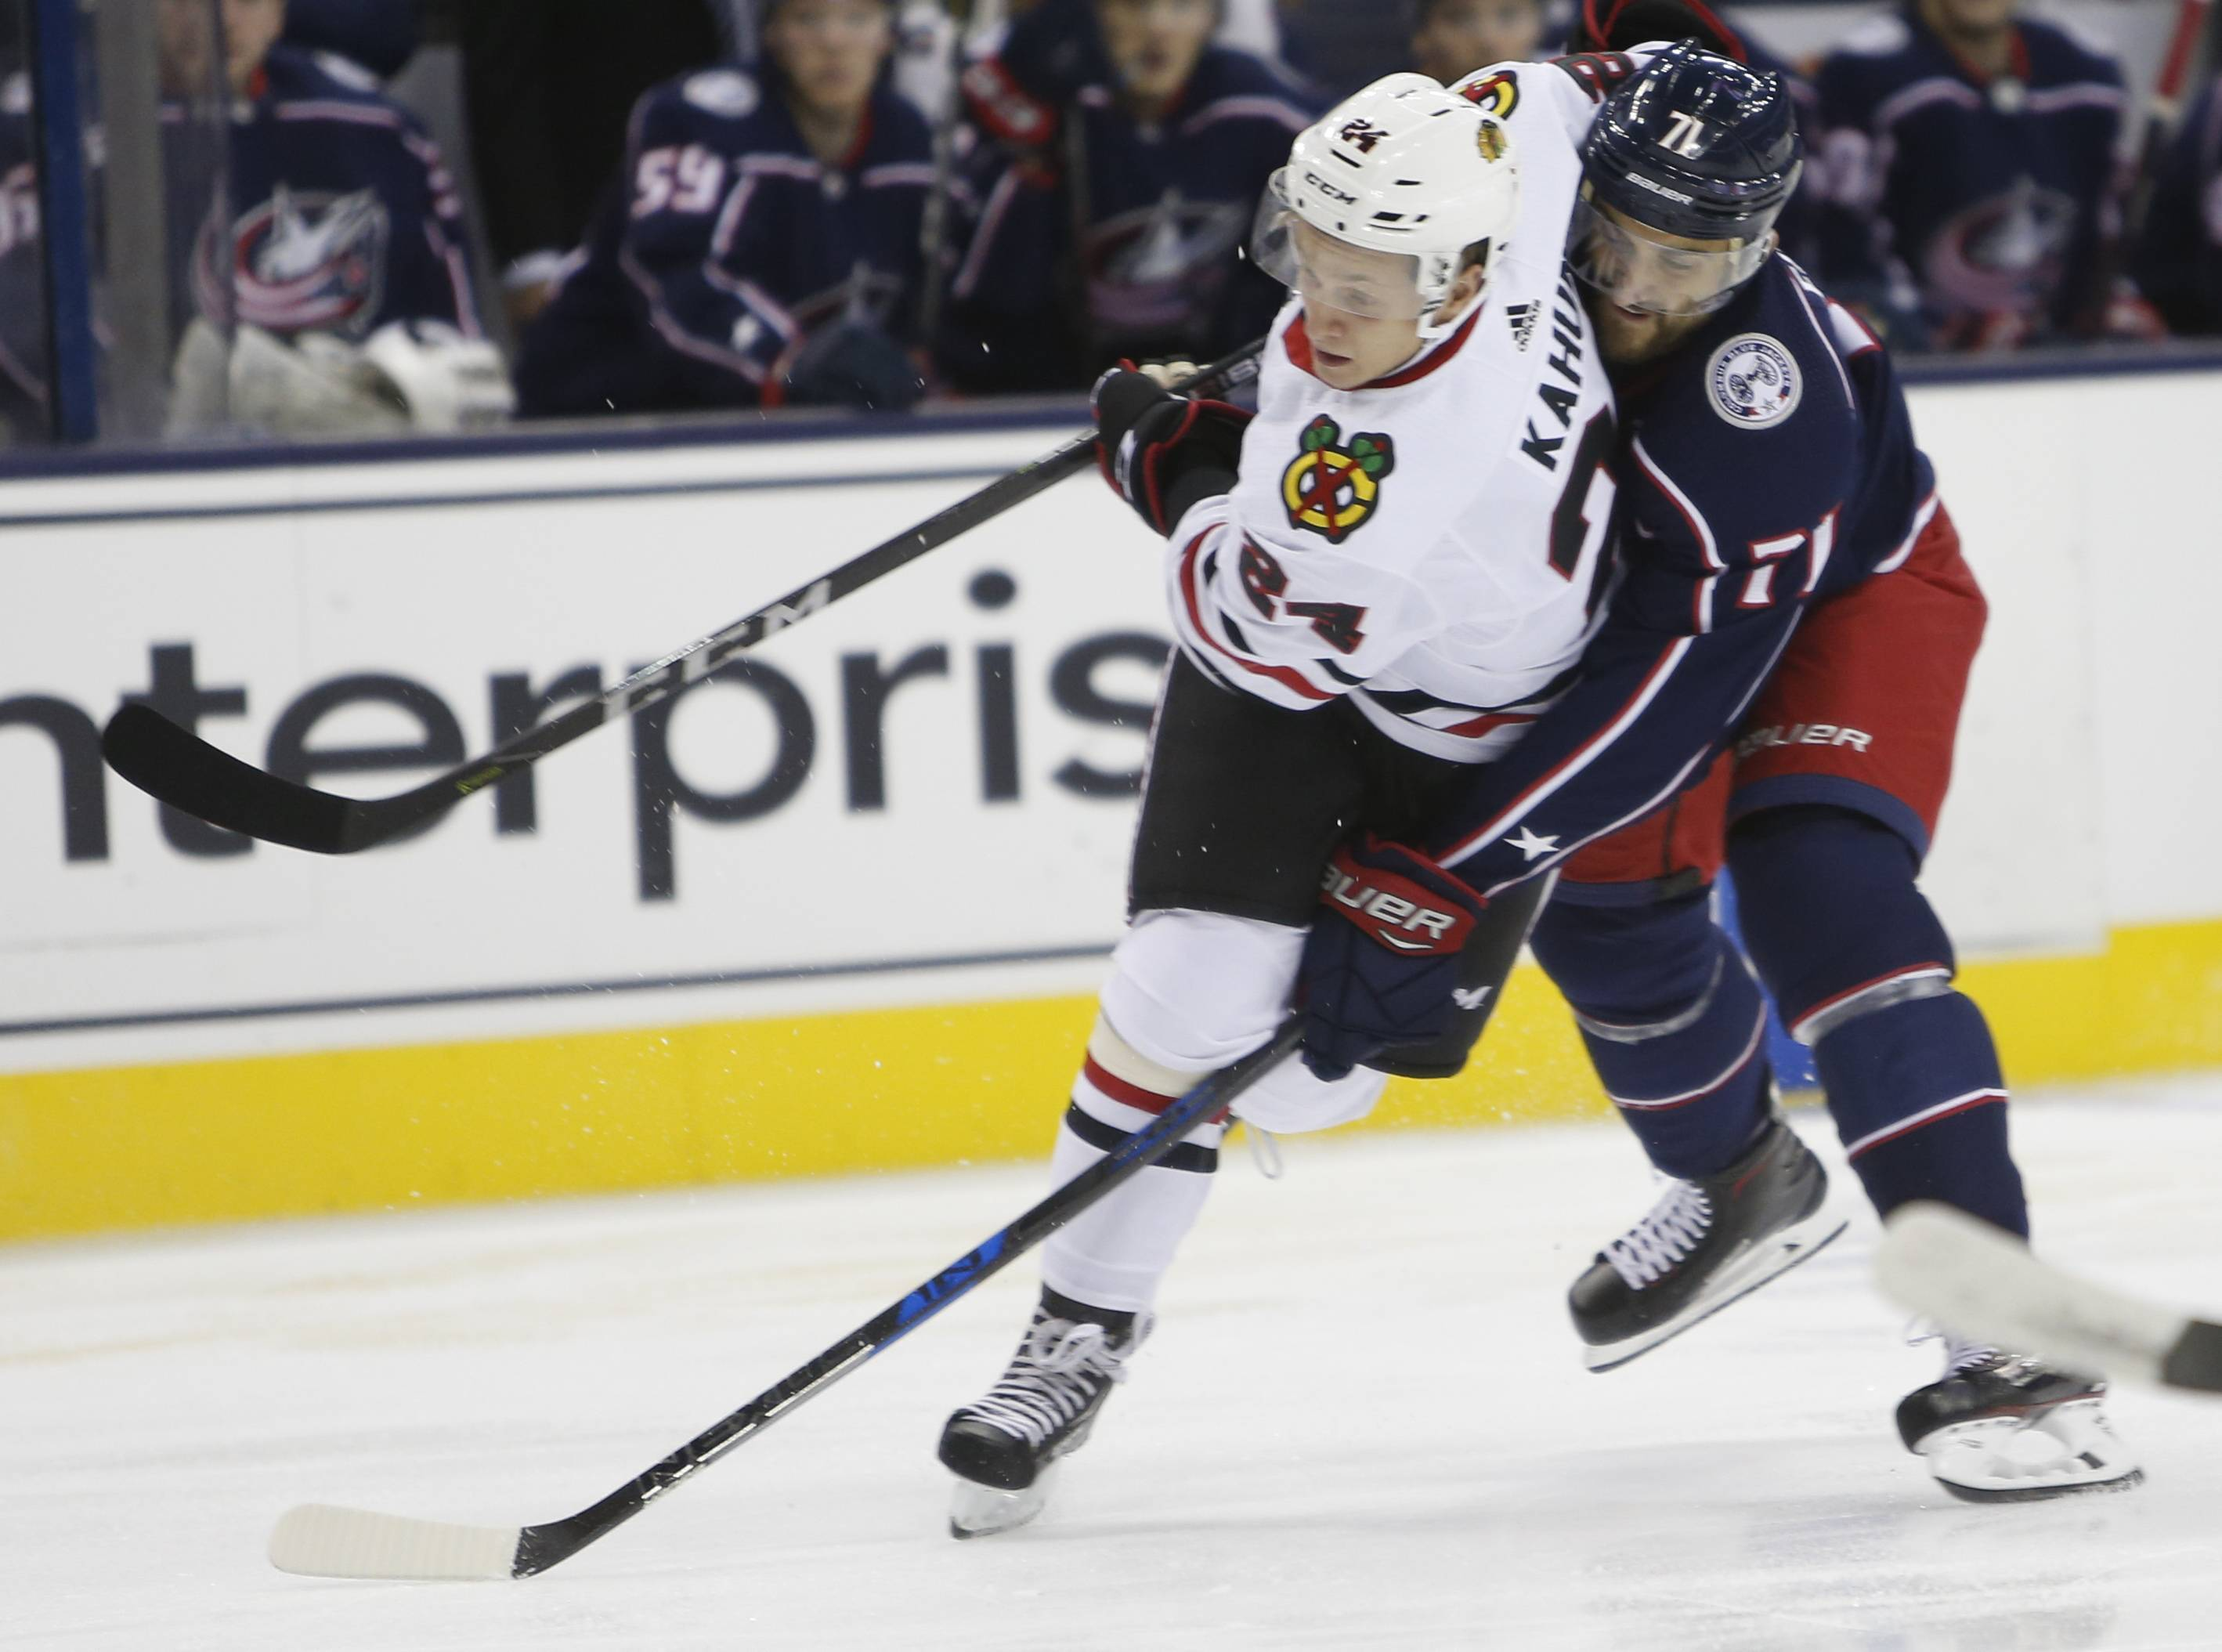 Chicago Blackhawks' Dominik Kahun, left, and Columbus Blue Jackets' Nick Foligno vie for the puck during the first period of a preseason game Tuesday, Sept. 18 in Columbus, Ohio.